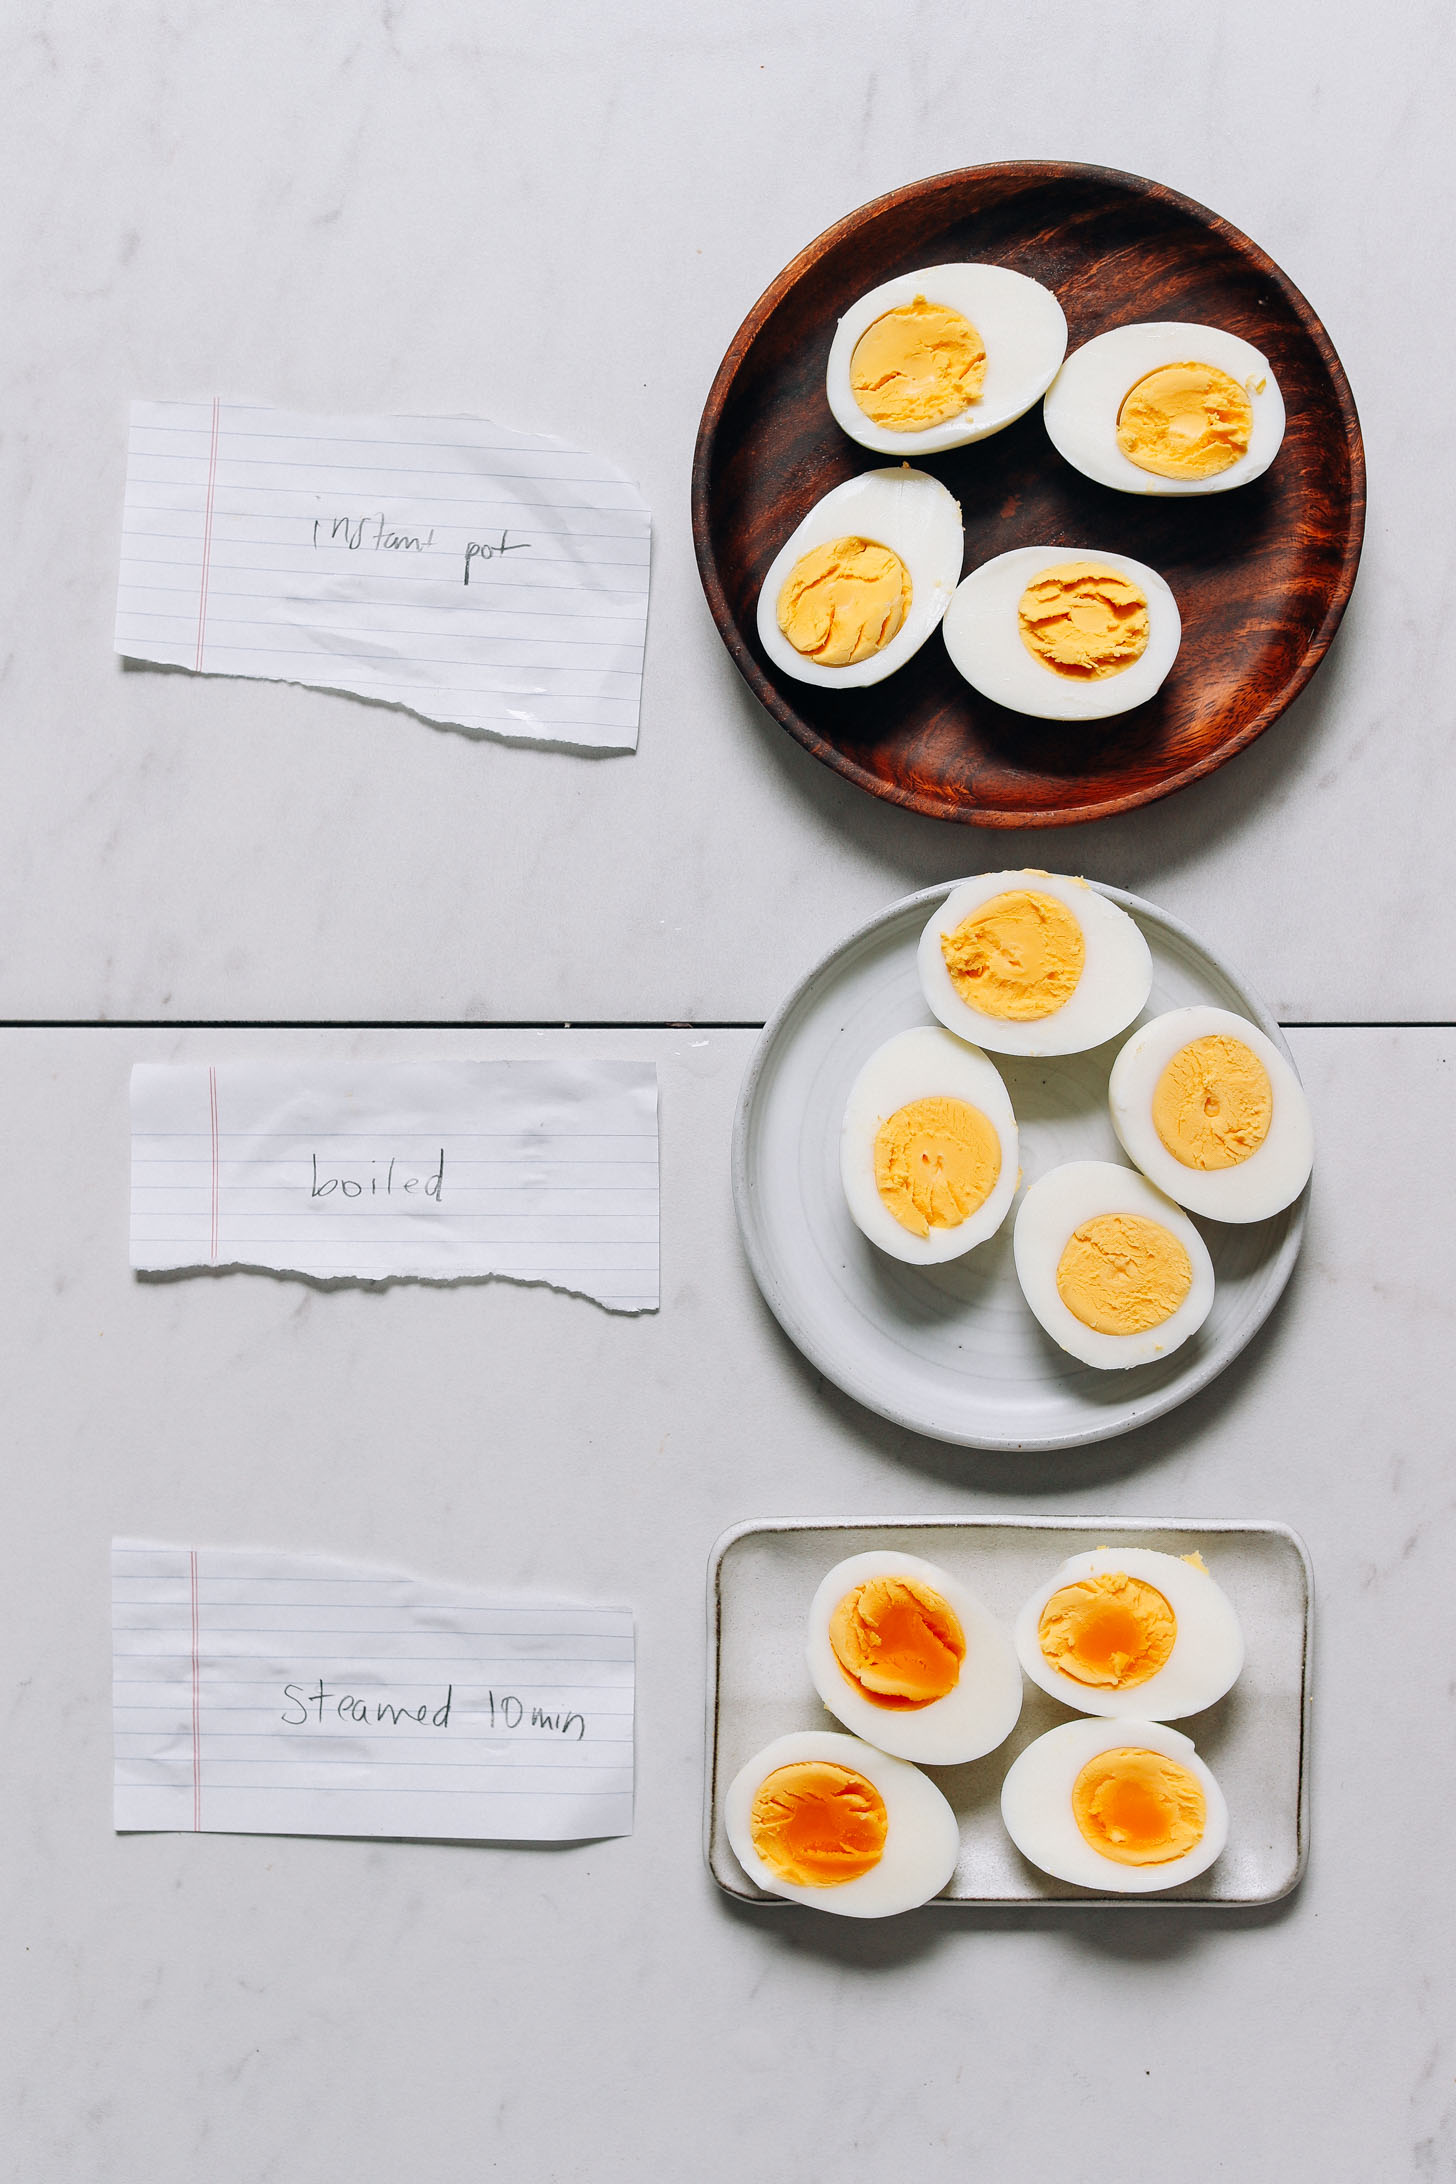 Three plates of perfectly cooked hard boiled eggs made three ways